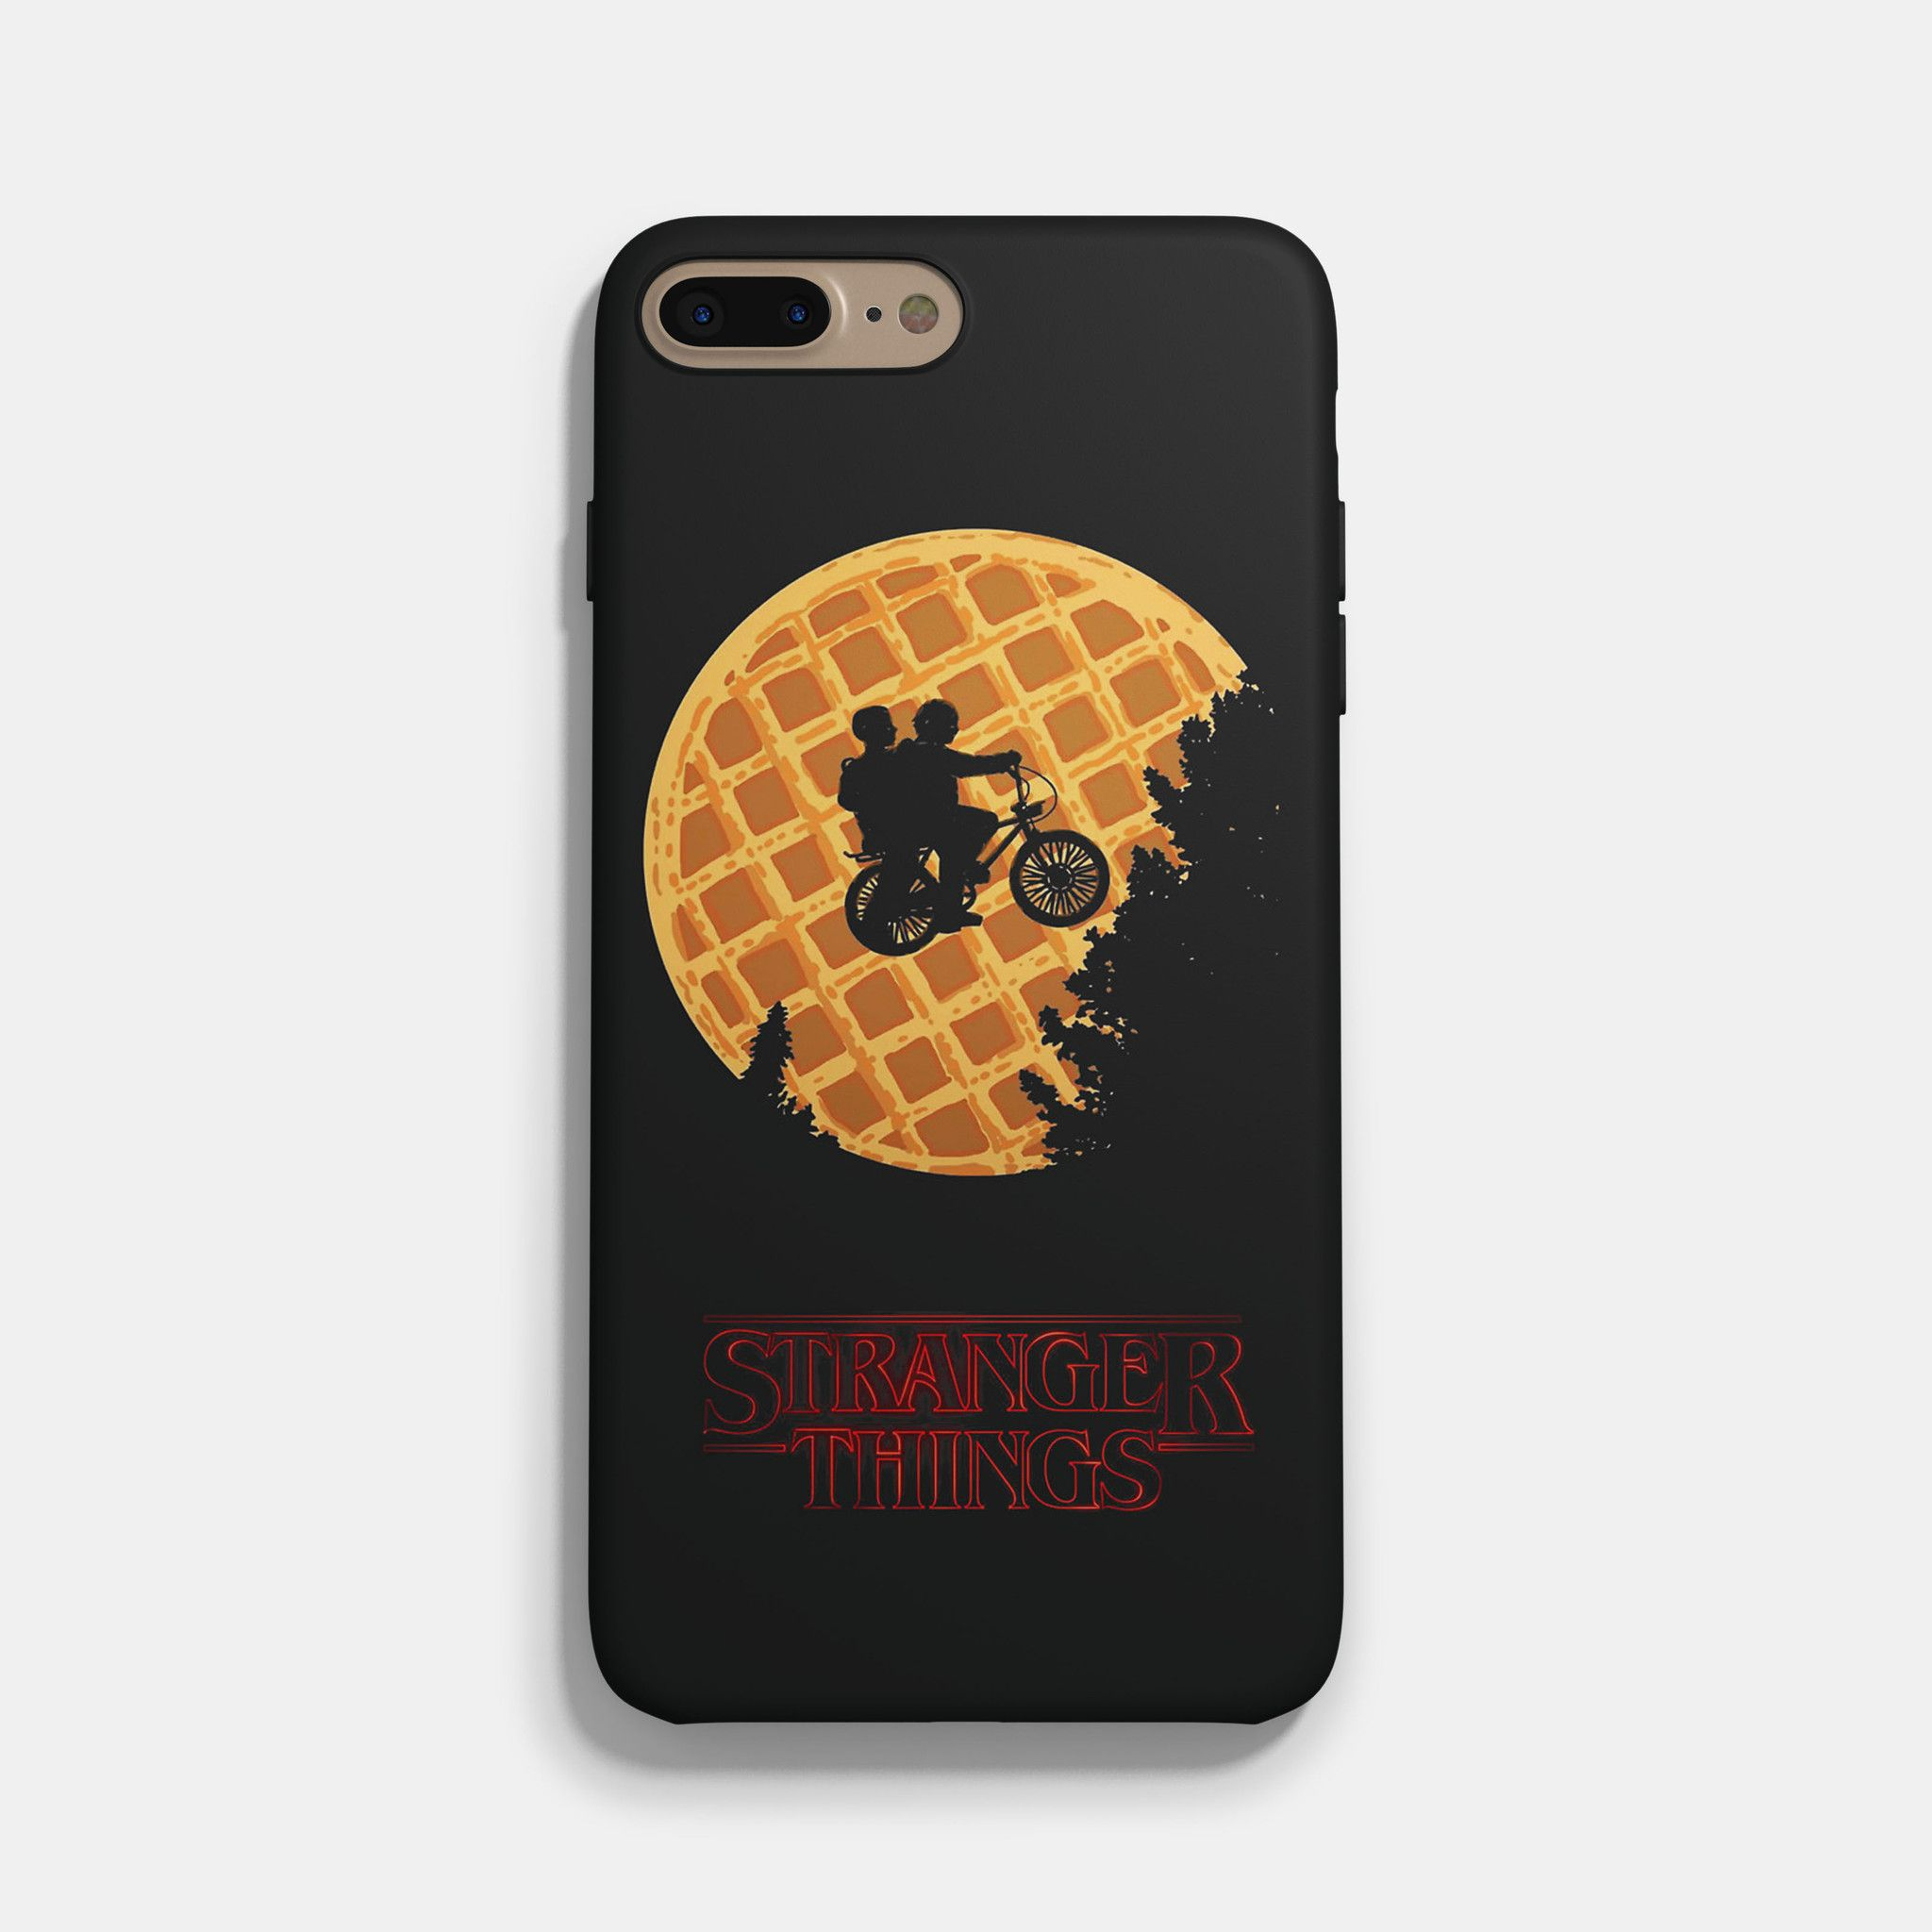 Stranger Things 2 iPhone 7 / 7 Plus Case iphonecase